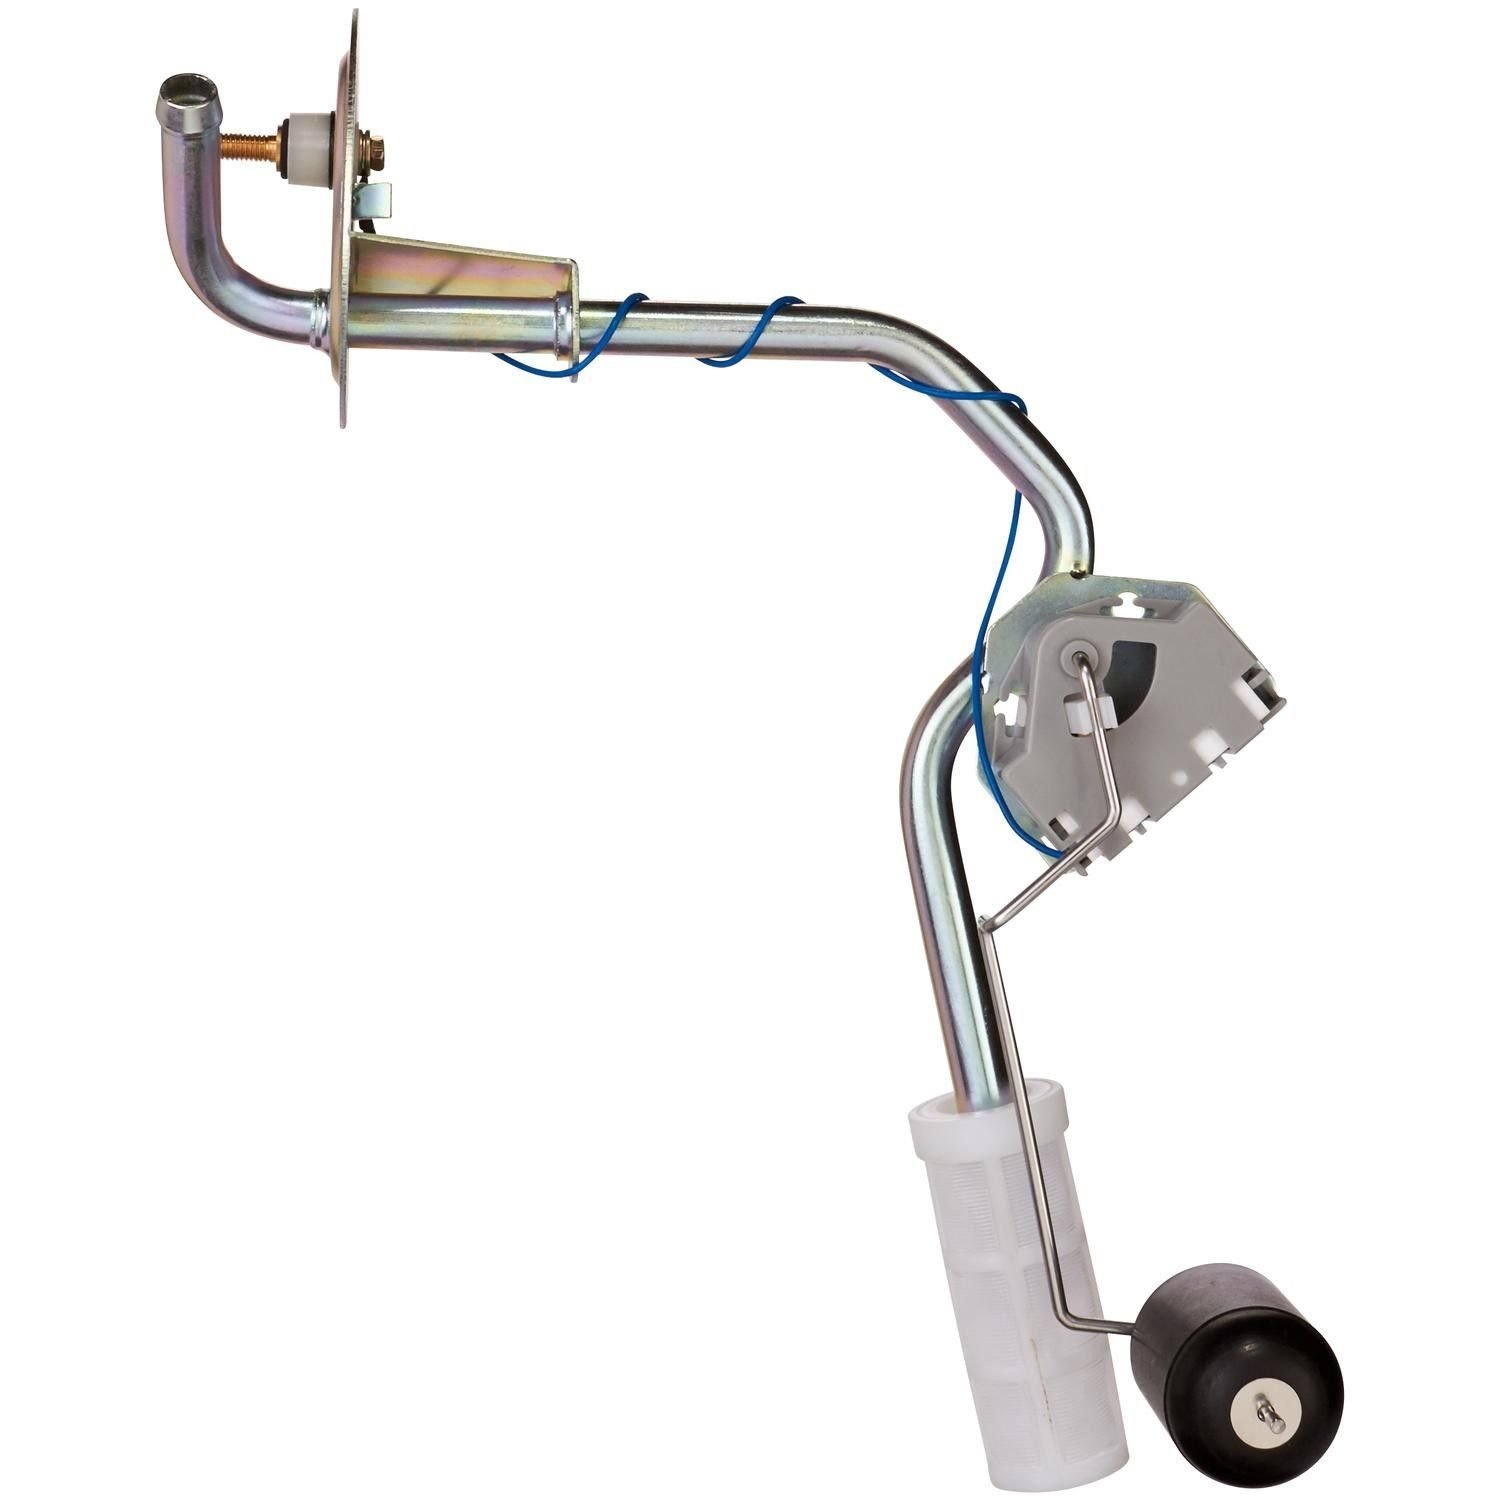 Ford Mustang Fuel Tank Sending Unit Replacement Dorman Motorcraft 1964 8 Cyl 47l Spectra Fg86a 3 Line W O Low Light